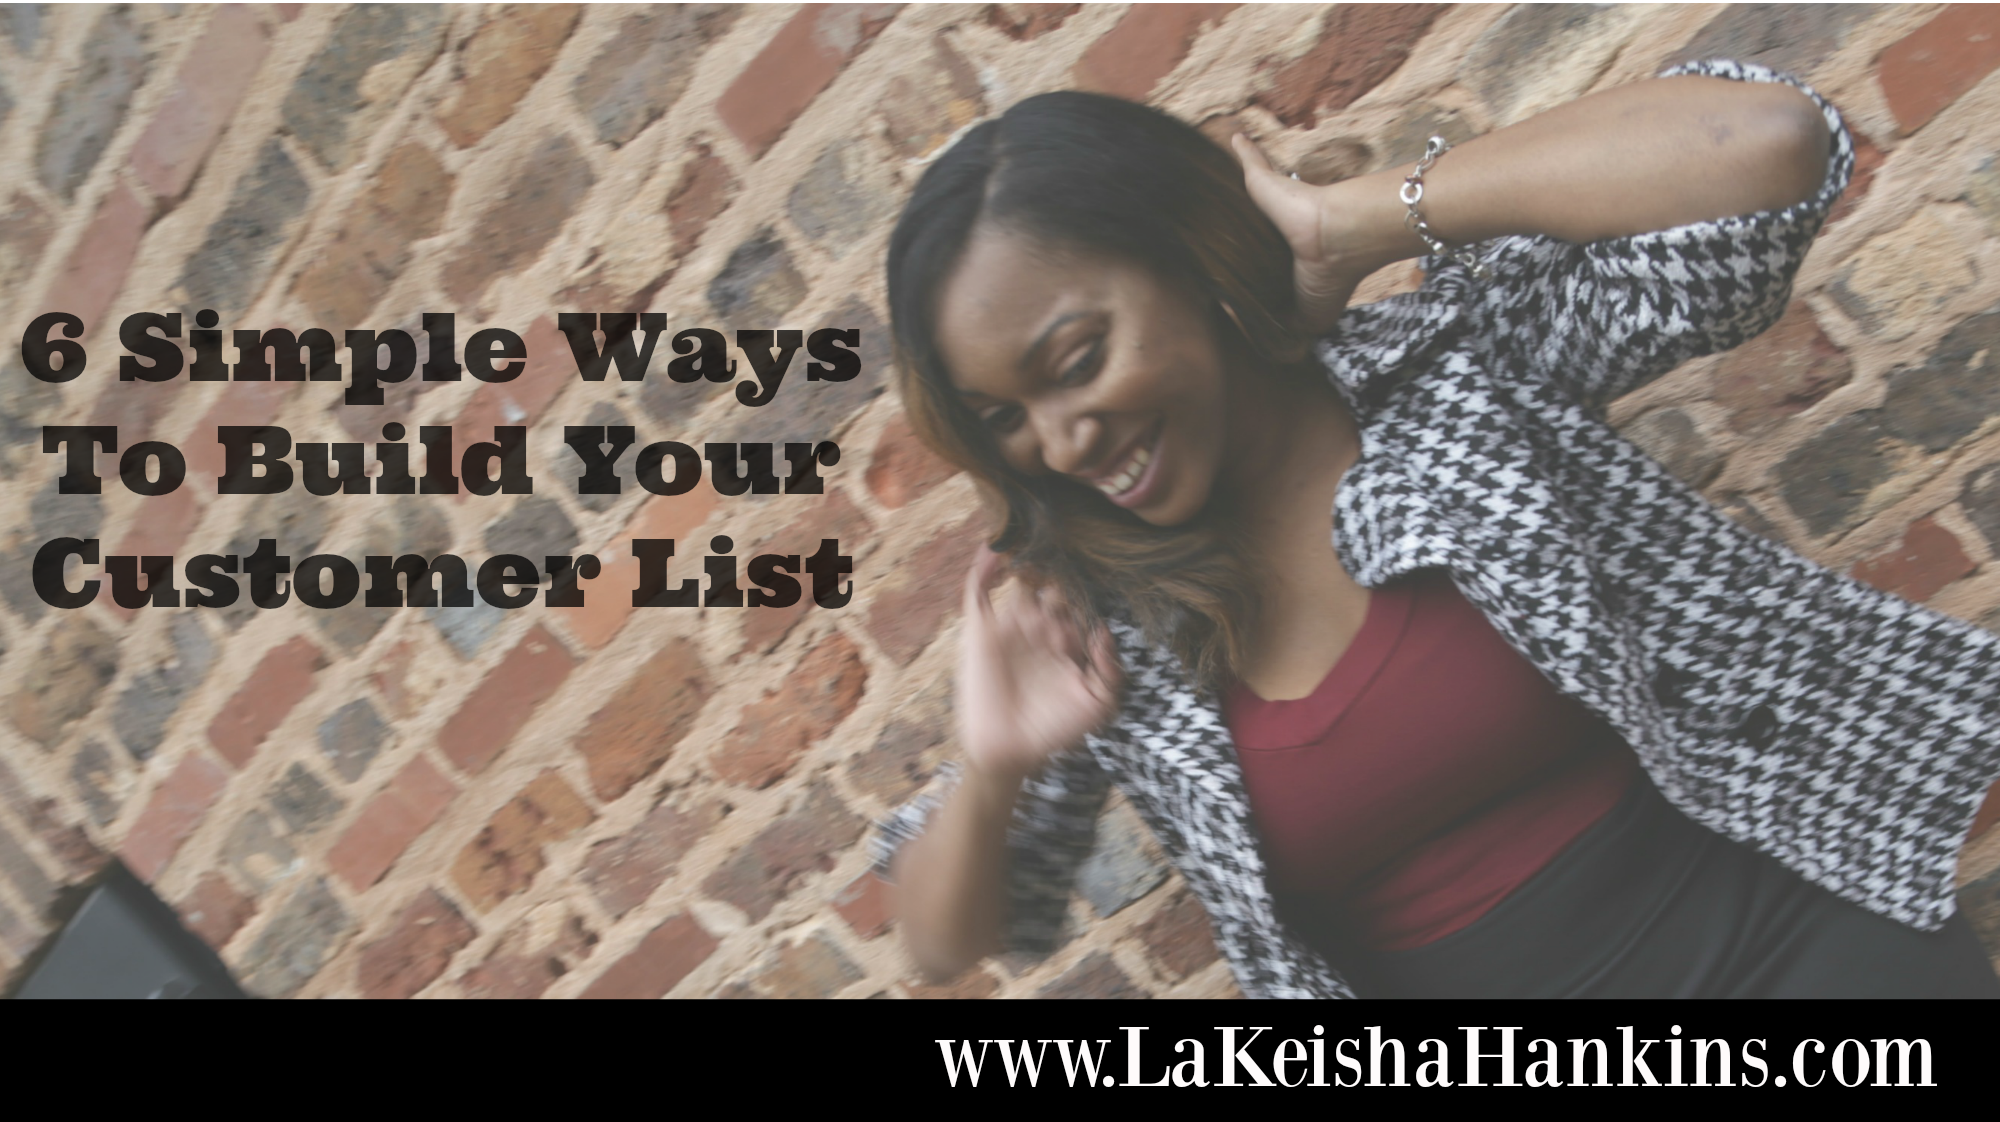 6 Simple Ways to Build Your Customer List